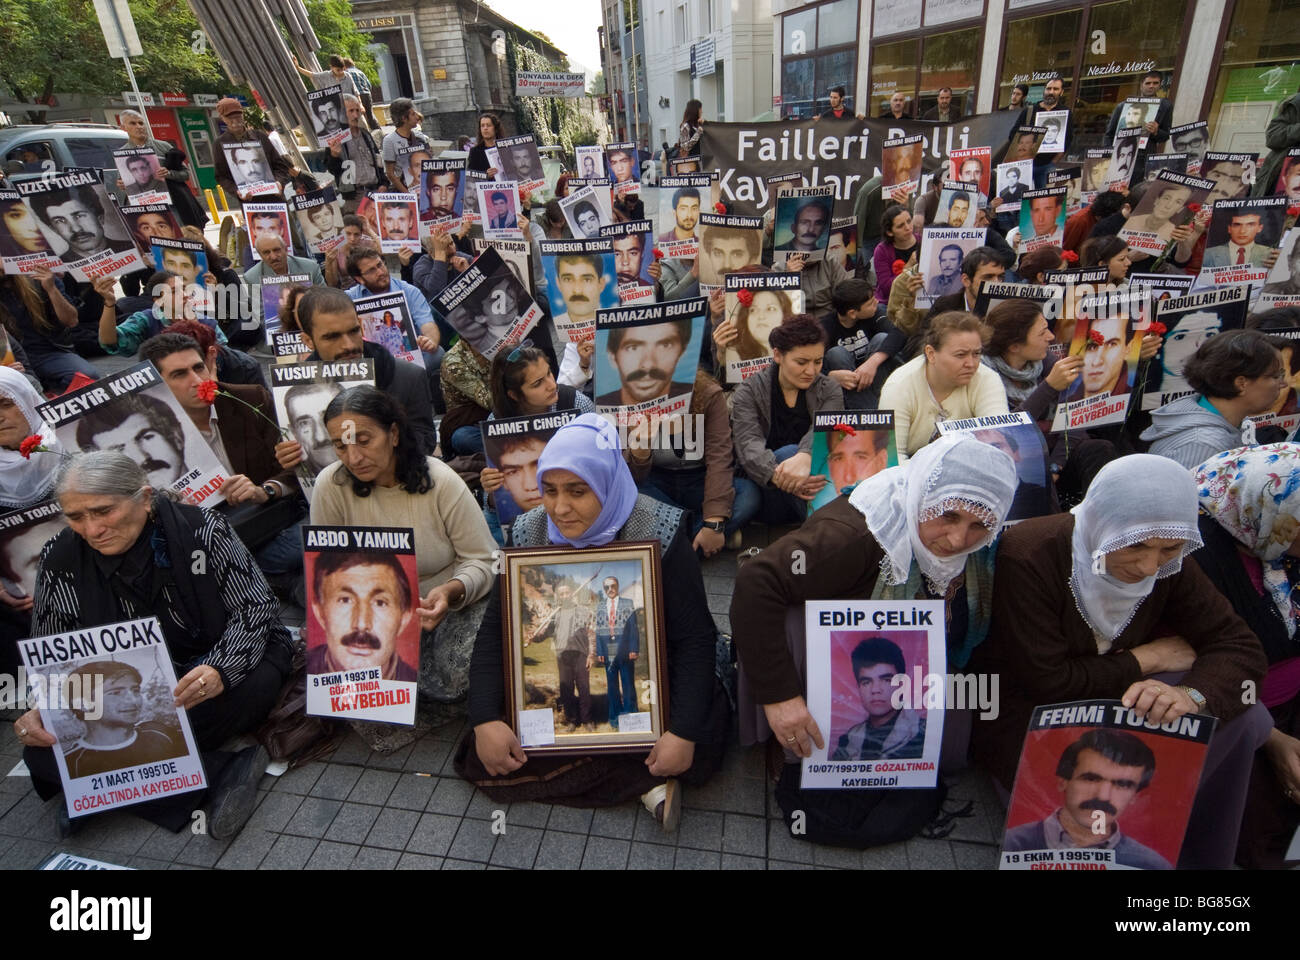 SATURDAY MOTHERS IN ISTANBUL PROTESTING FOR THEIR  DISAPEARED RELATIVES WHILE UNDER POLICE INTERROGATION IN TURKEY - Stock Image